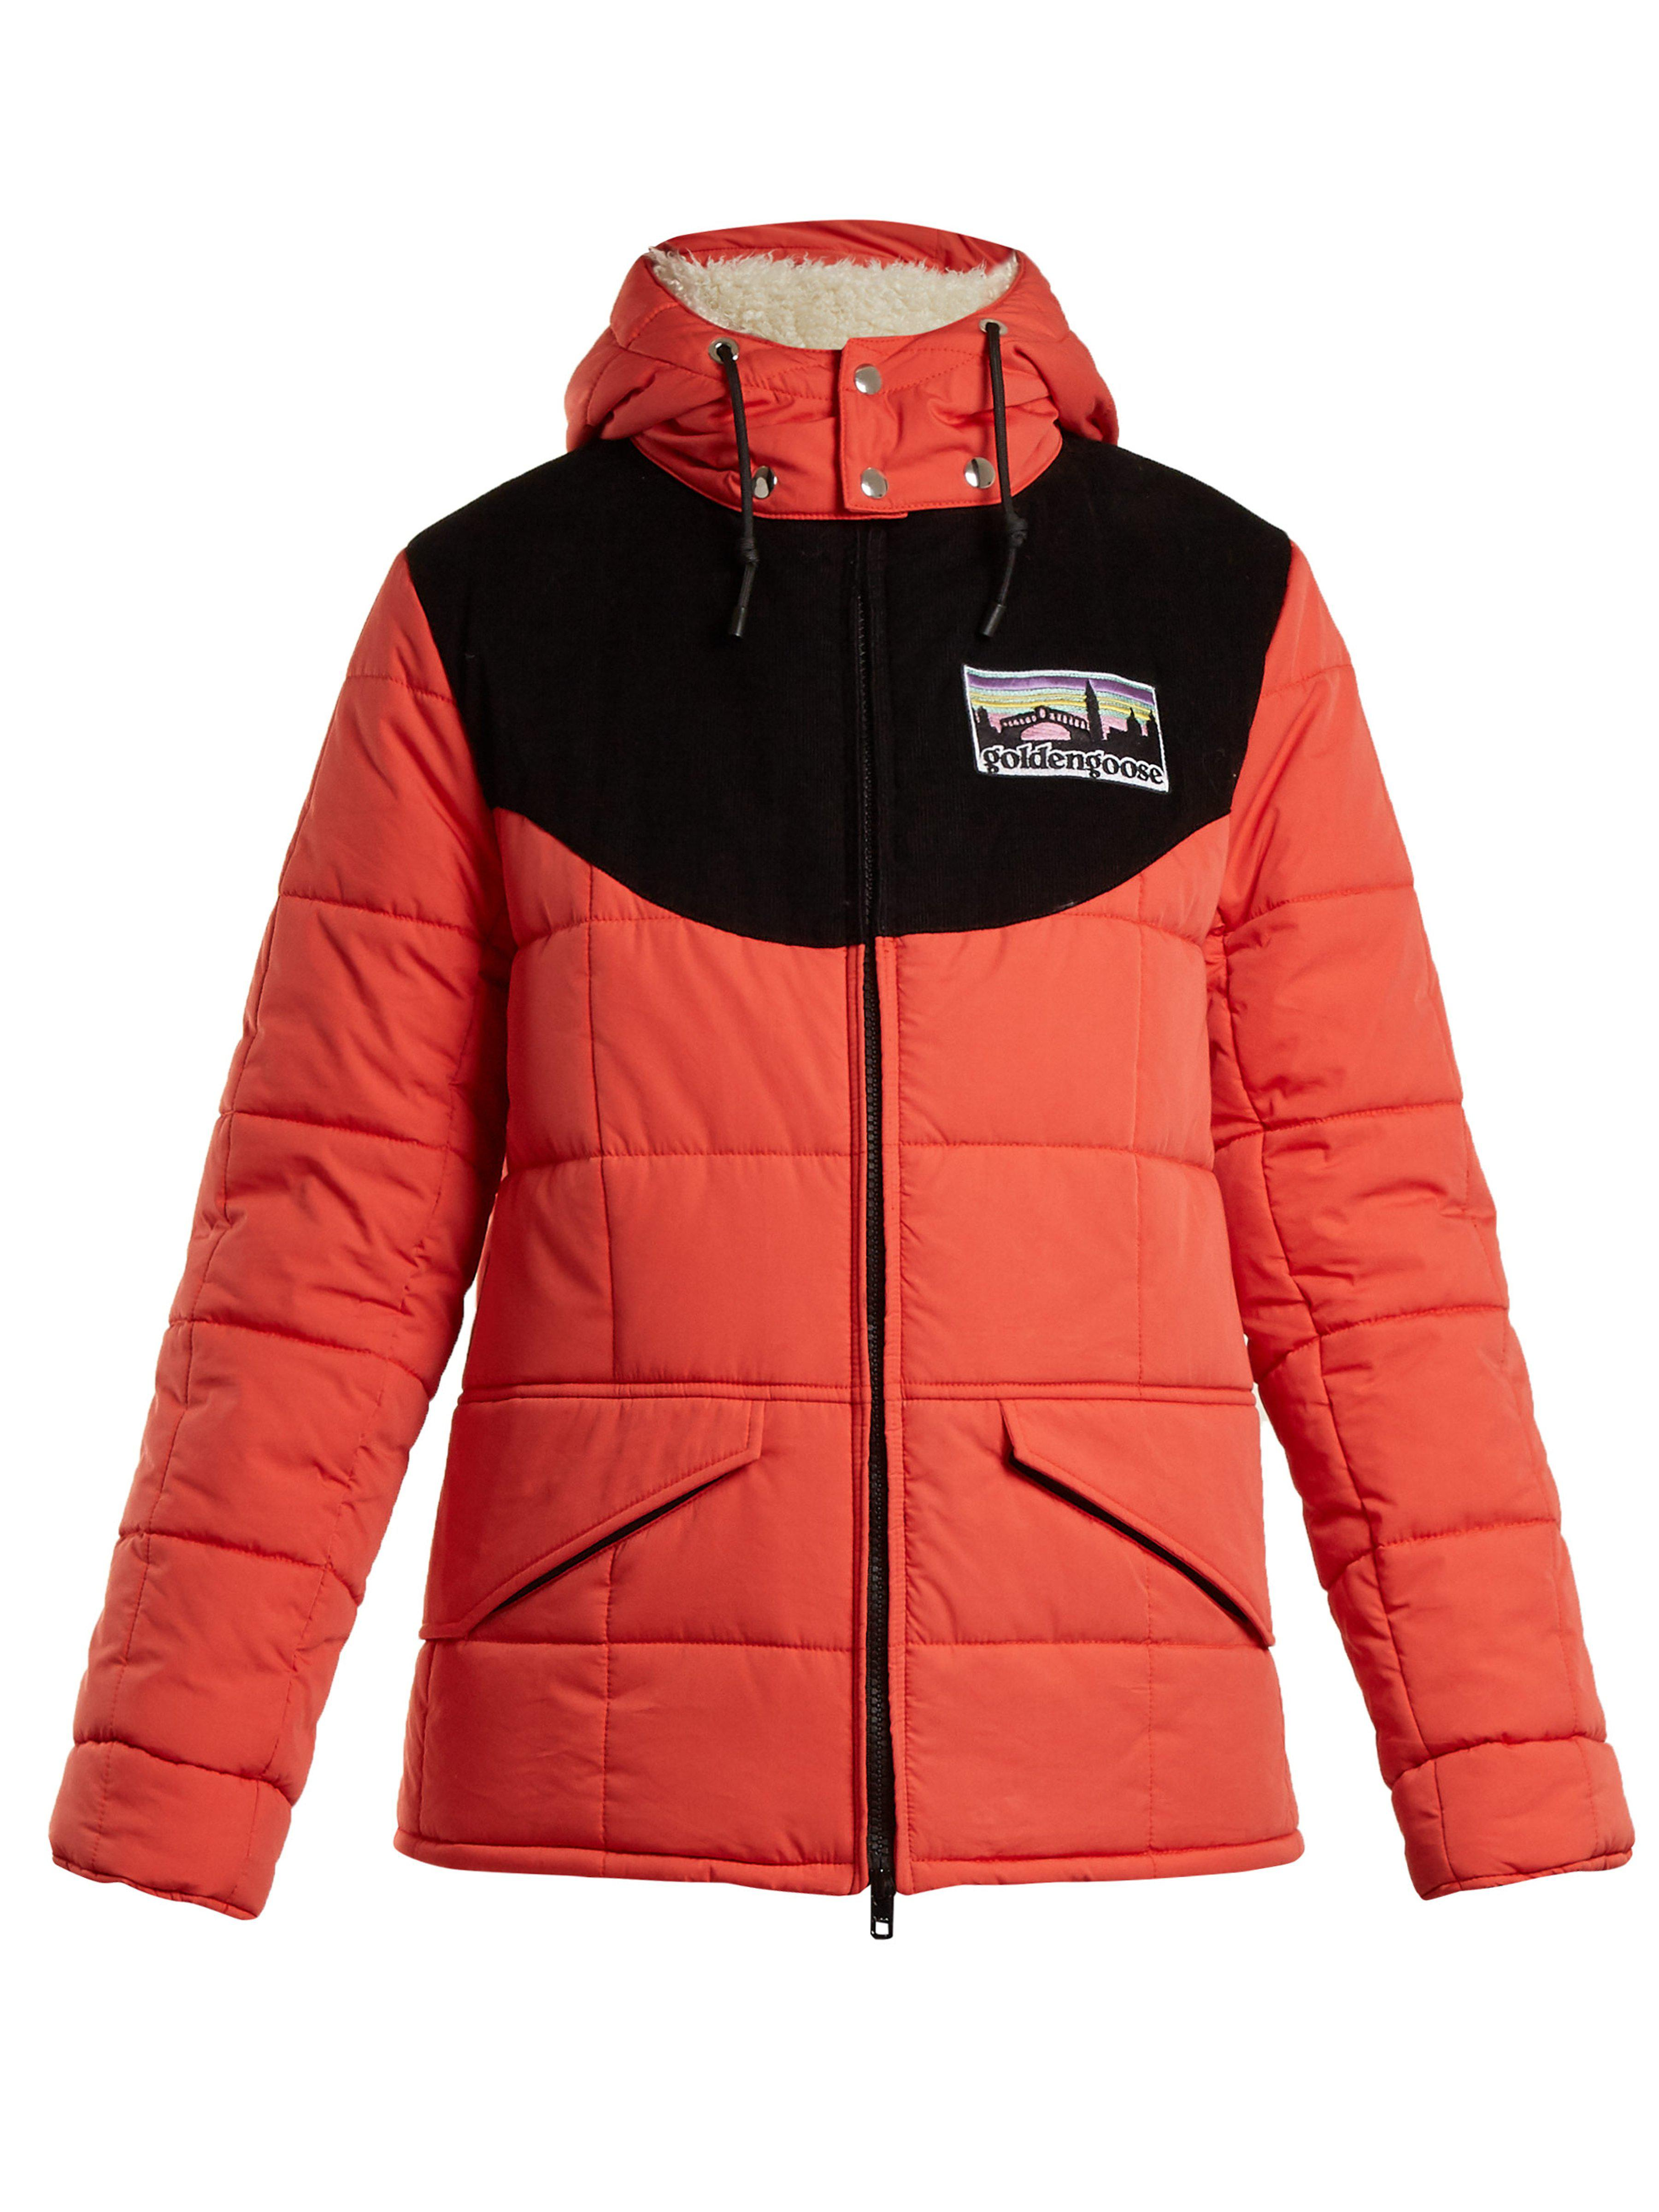 a67662bec479 Golden Goose Deluxe Brand Agena Quilted Jacket in Red - Lyst